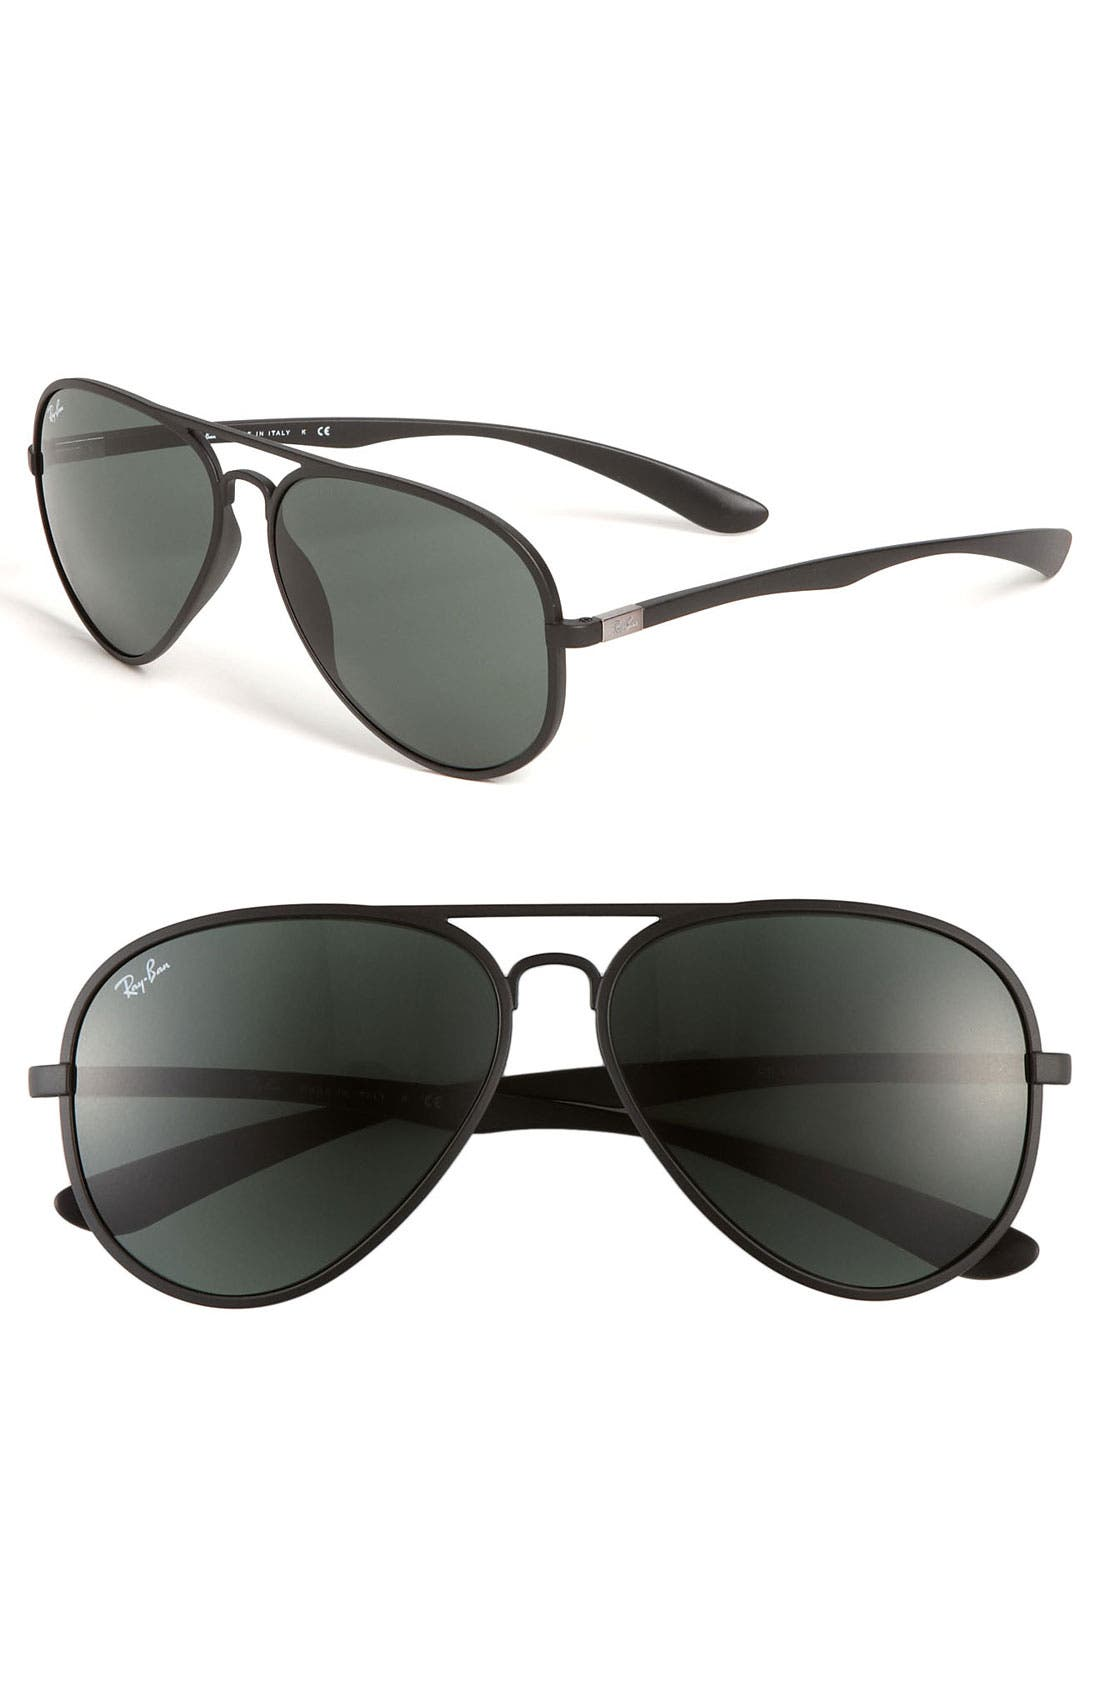 Alternate Image 1 Selected - Ray-Ban 'M Mod Caravan' 58mm Aviator Sunglasses